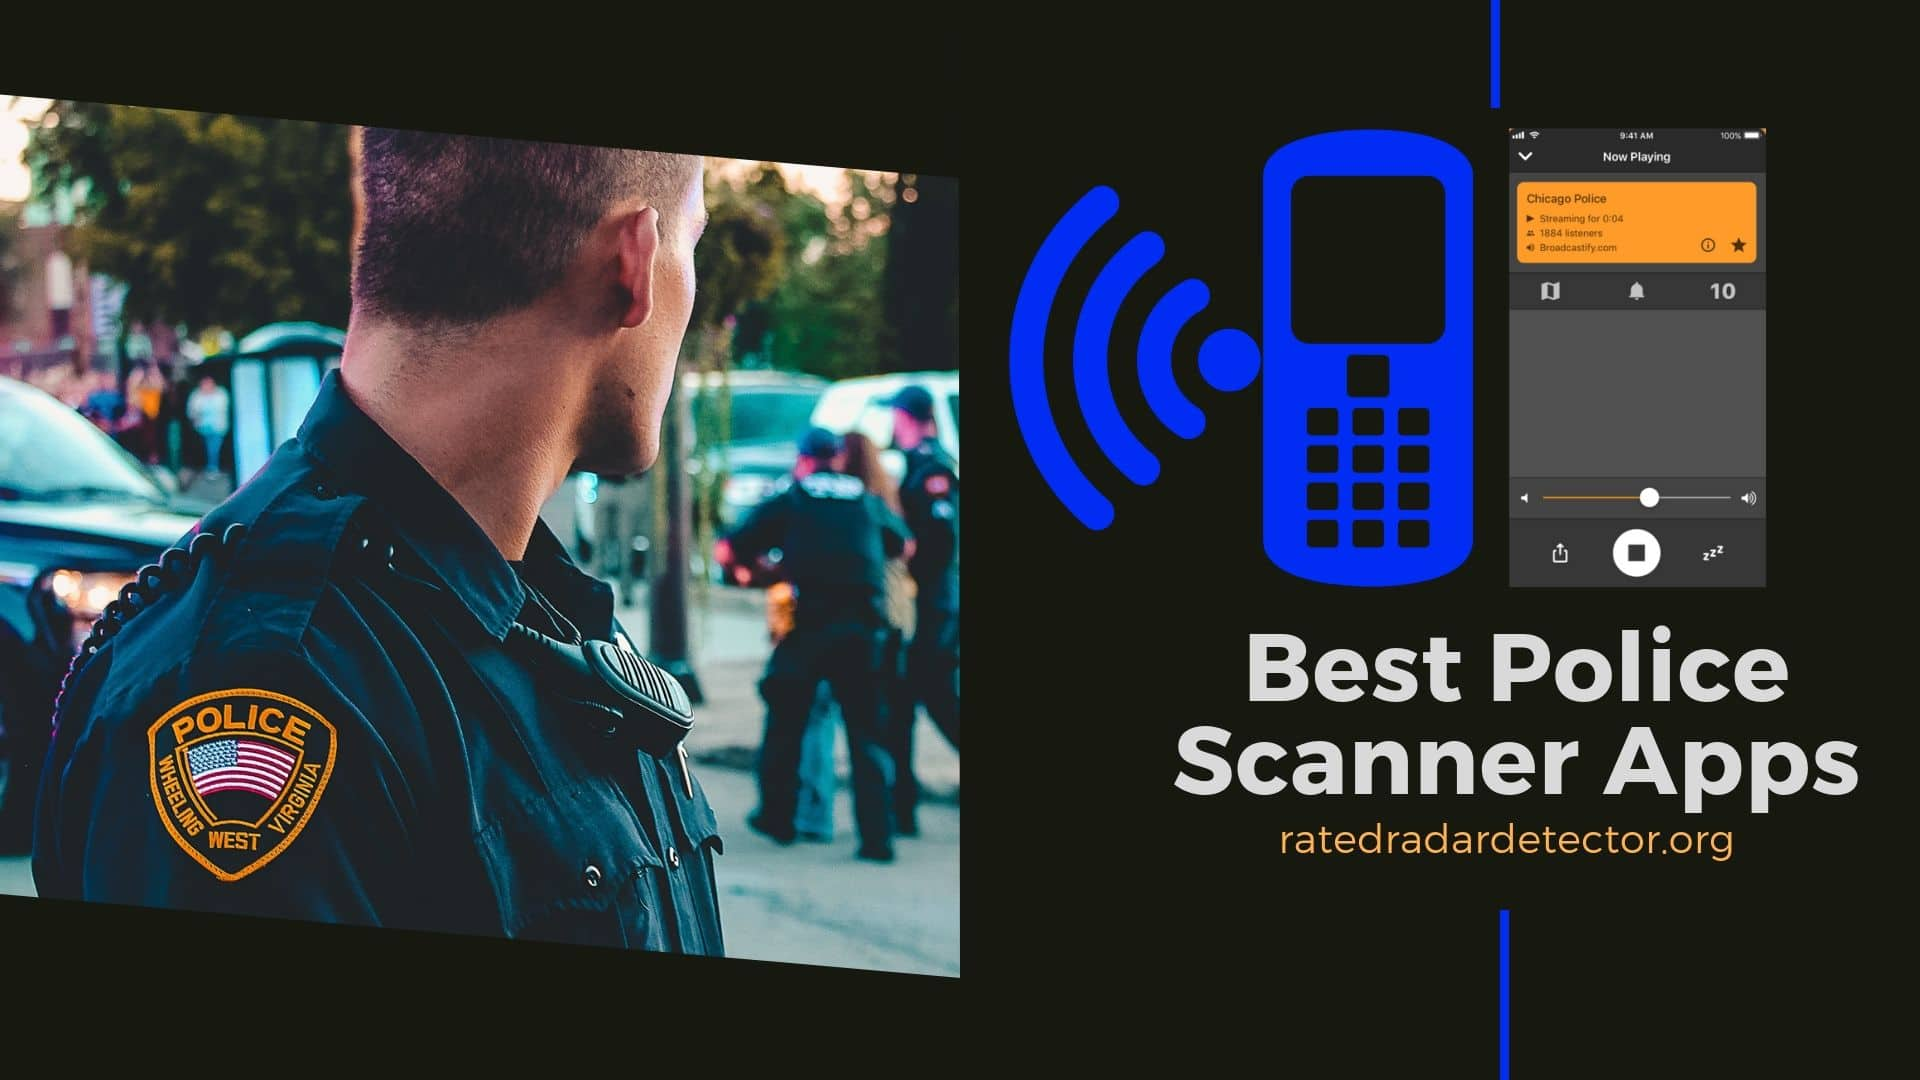 The 6 Best Police Scanner Apps of 2019 - Android & iPhone